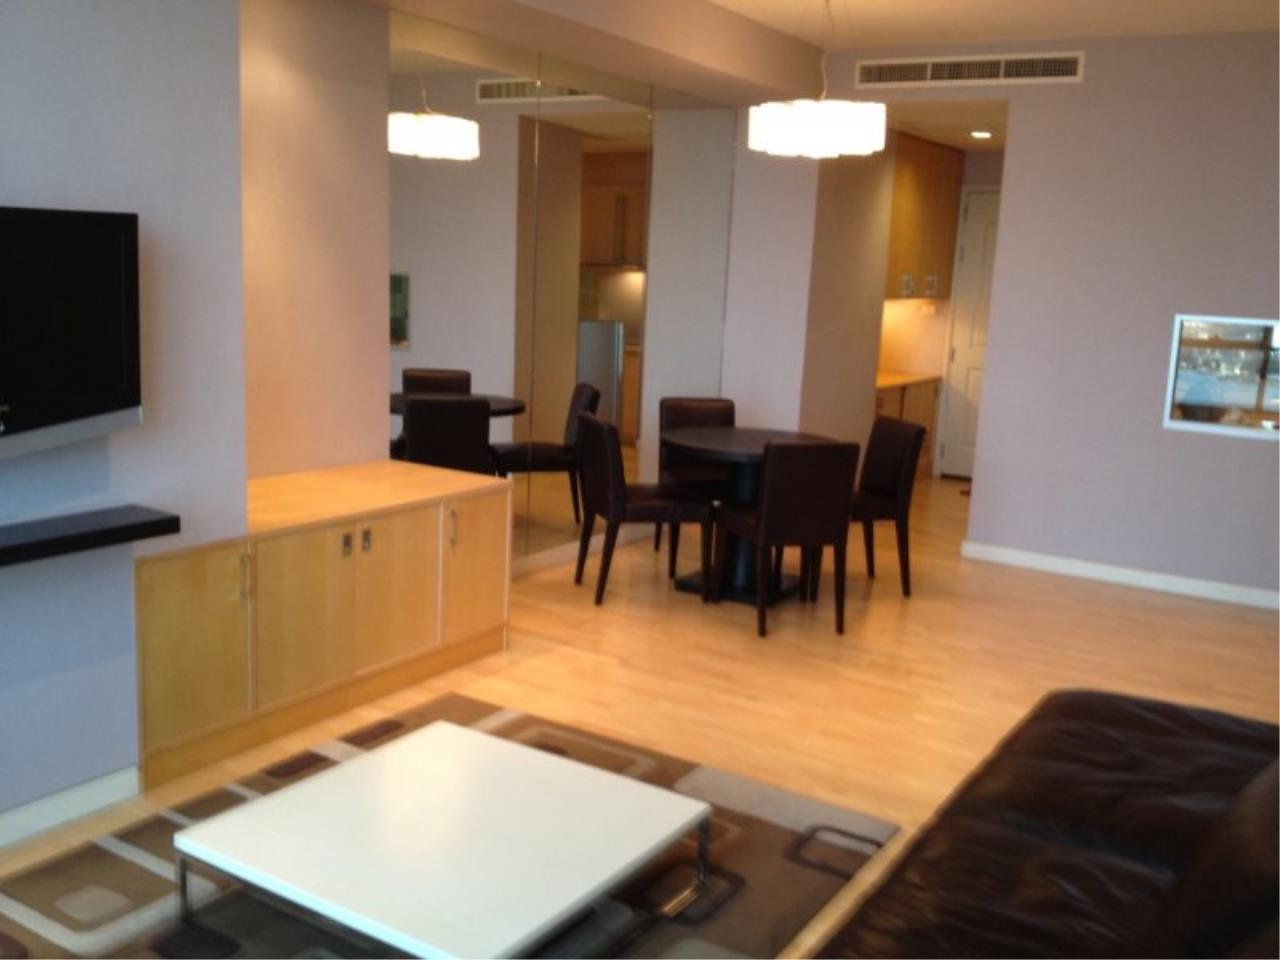 Piri Property Agency's 1 Bedroom in the Baan Sathorn Chaophraya building for rent on high floor 6